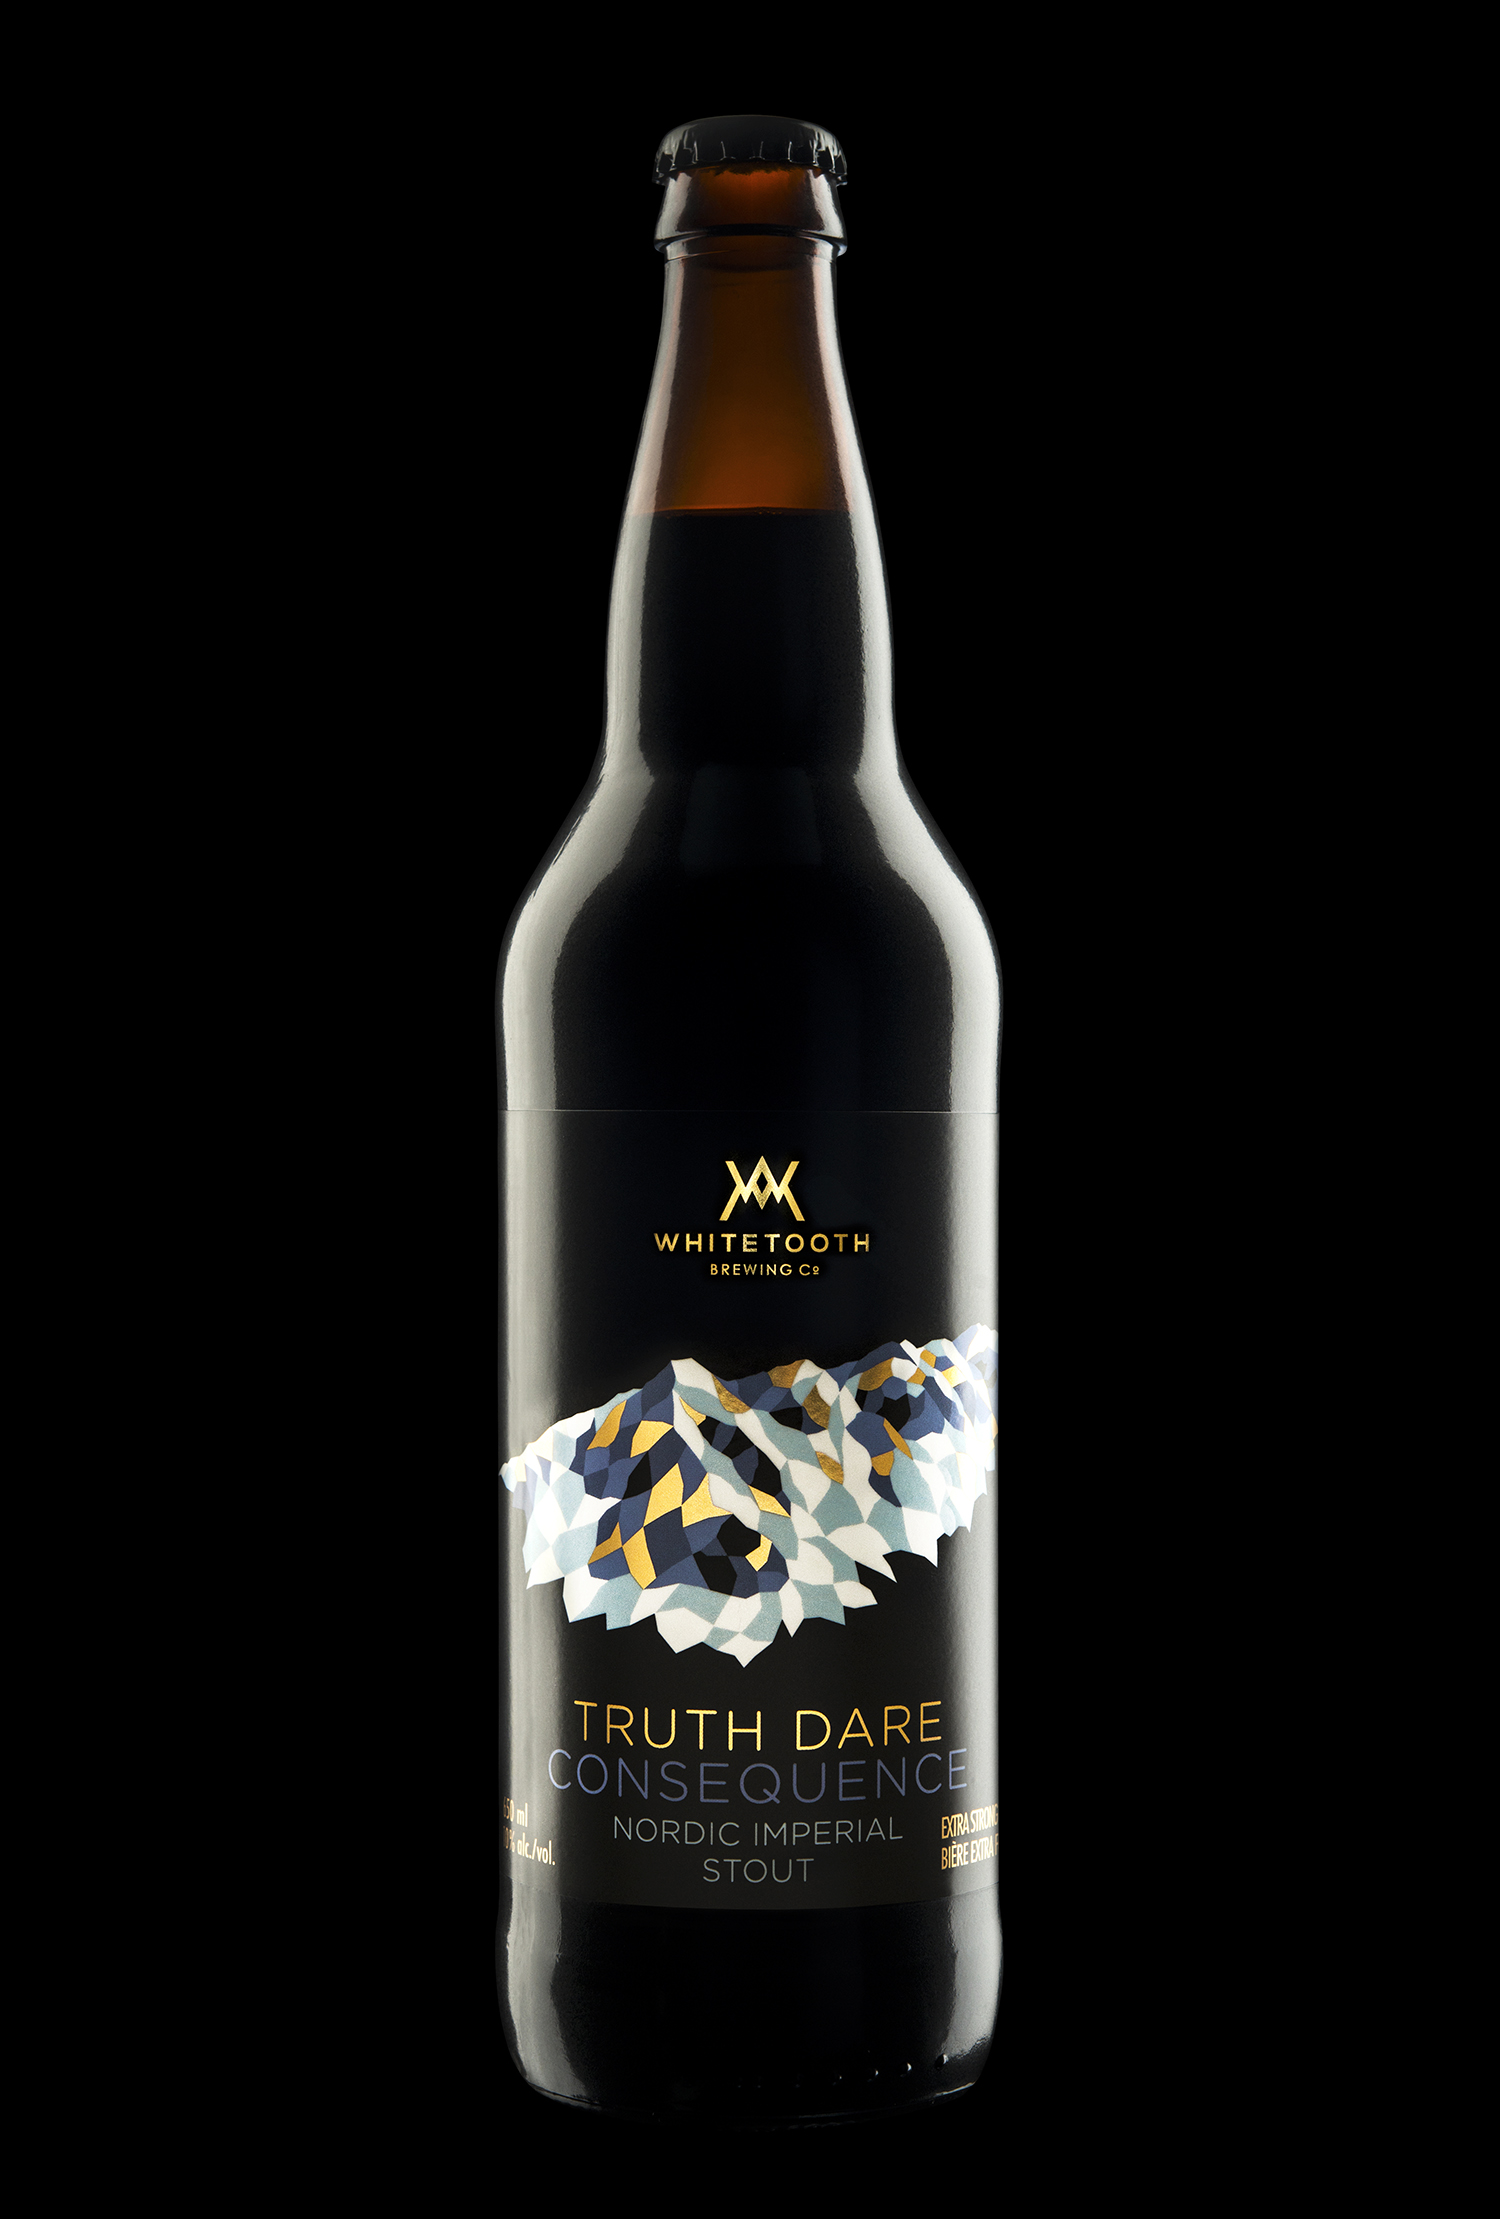 Branding and Packaging Design for Whitetooth Brewing's Truth Dare Consequences Nordic Imperial Stout